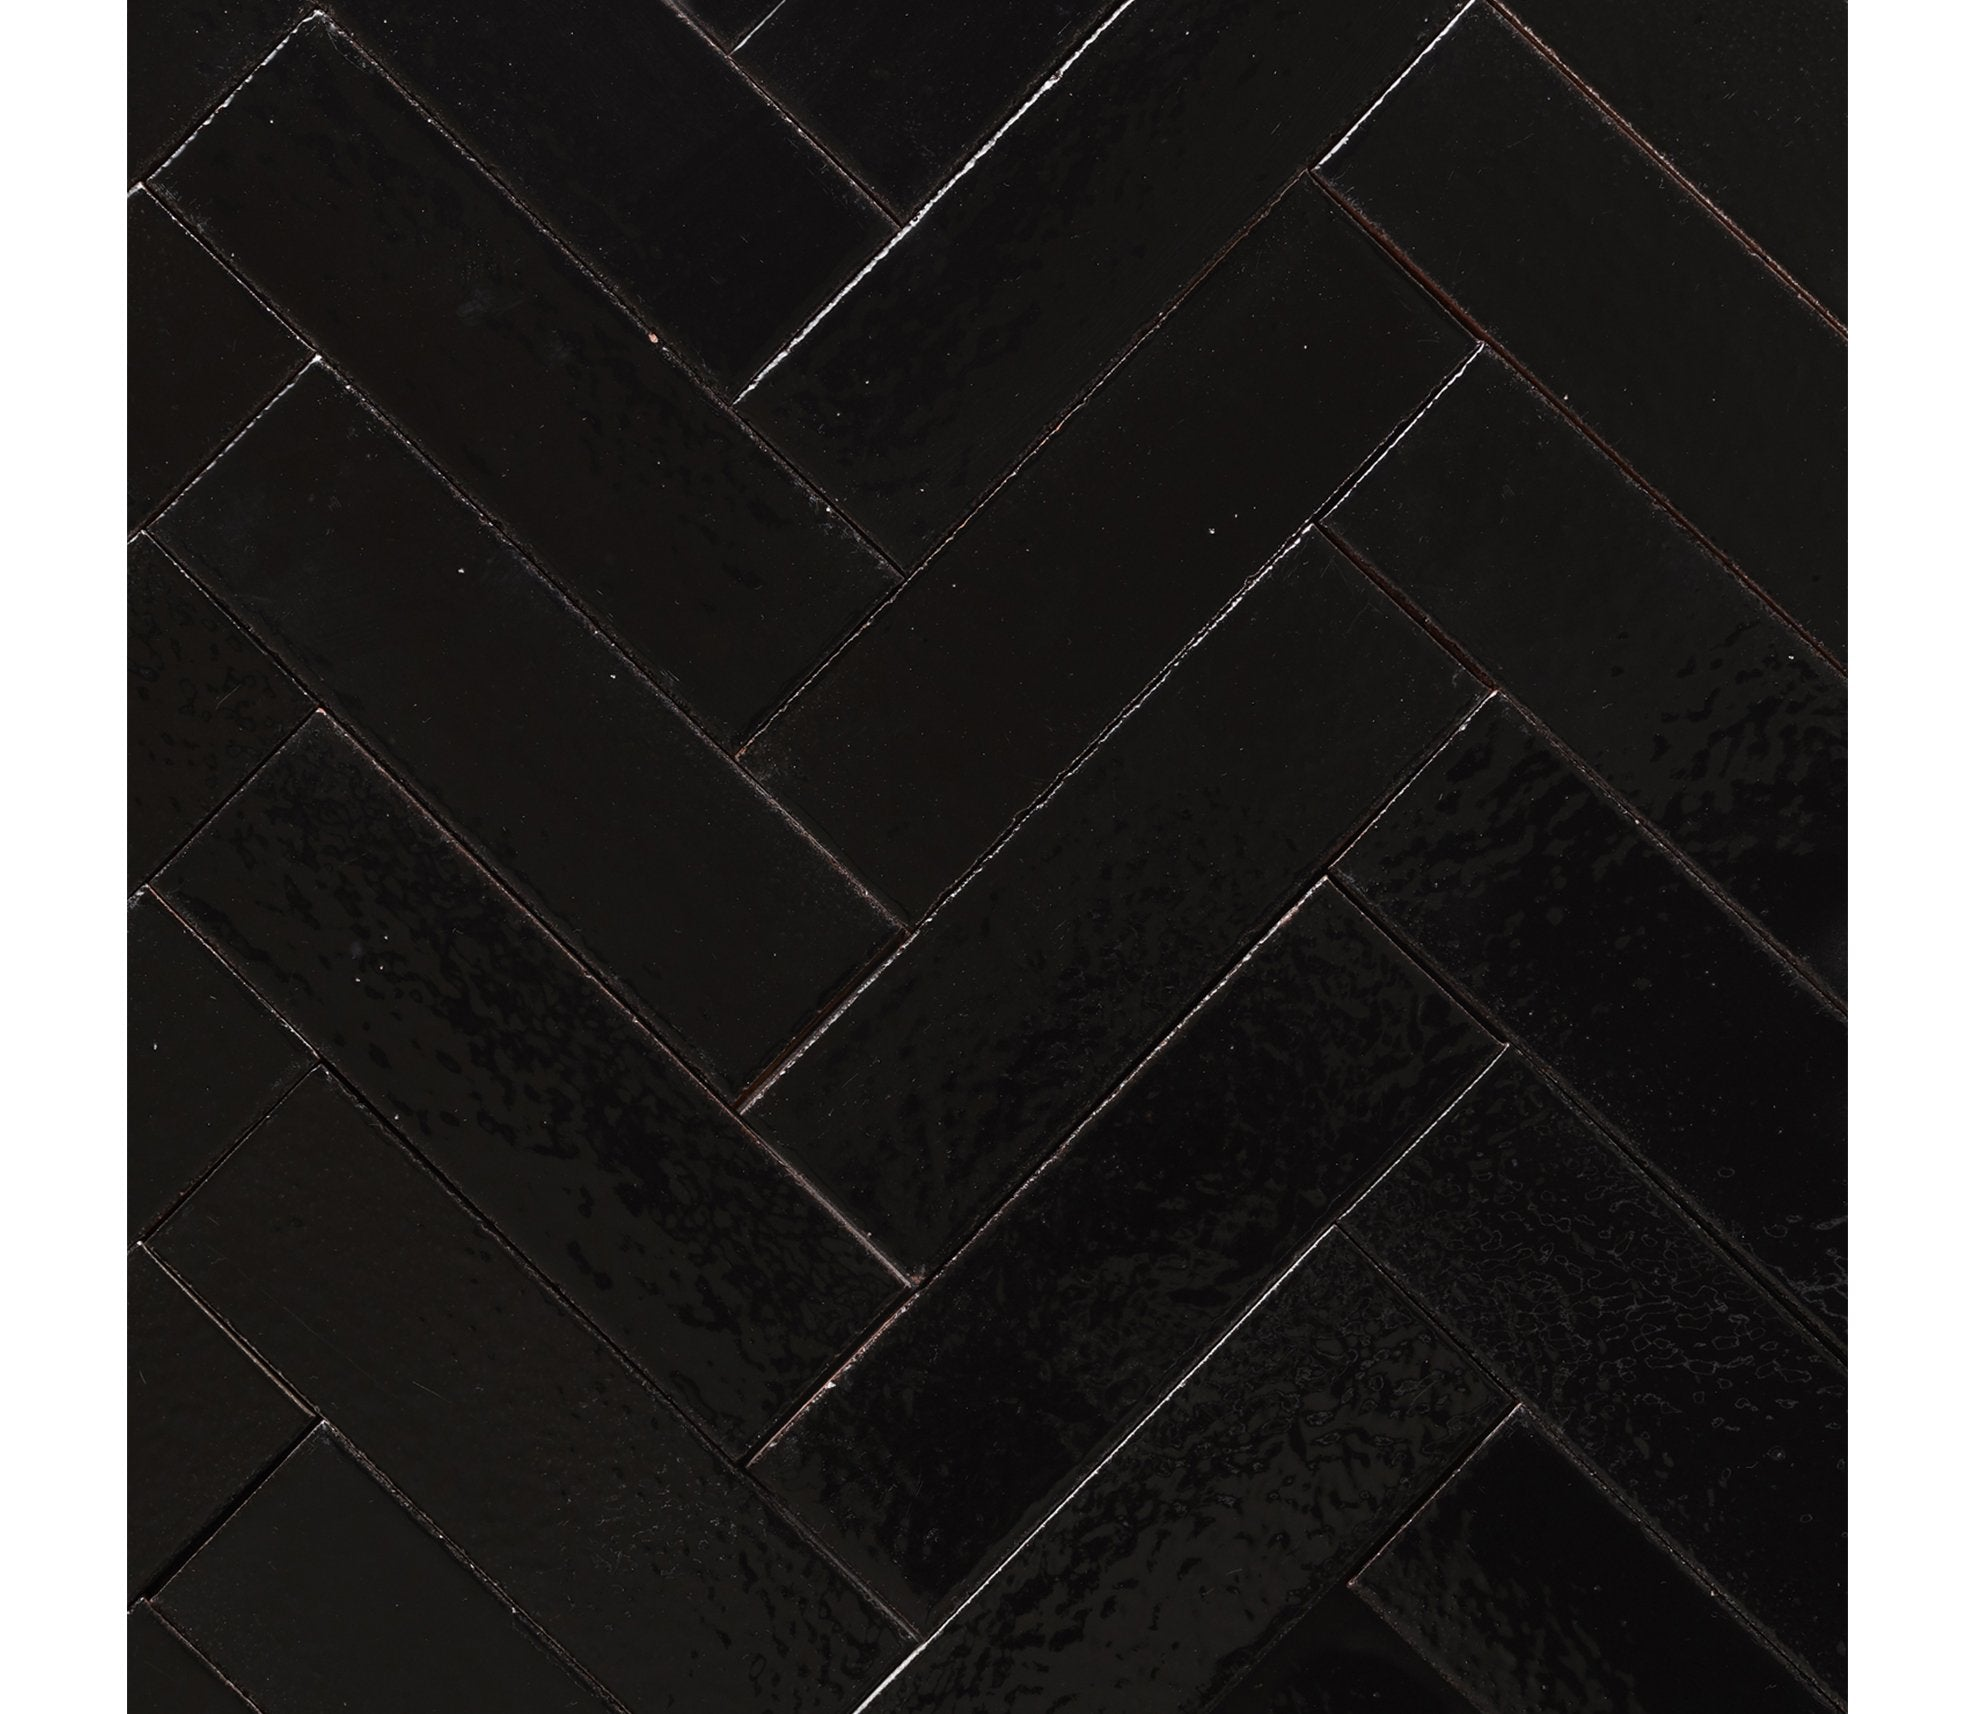 Terra Firma Glazed Bricks Product Image 57